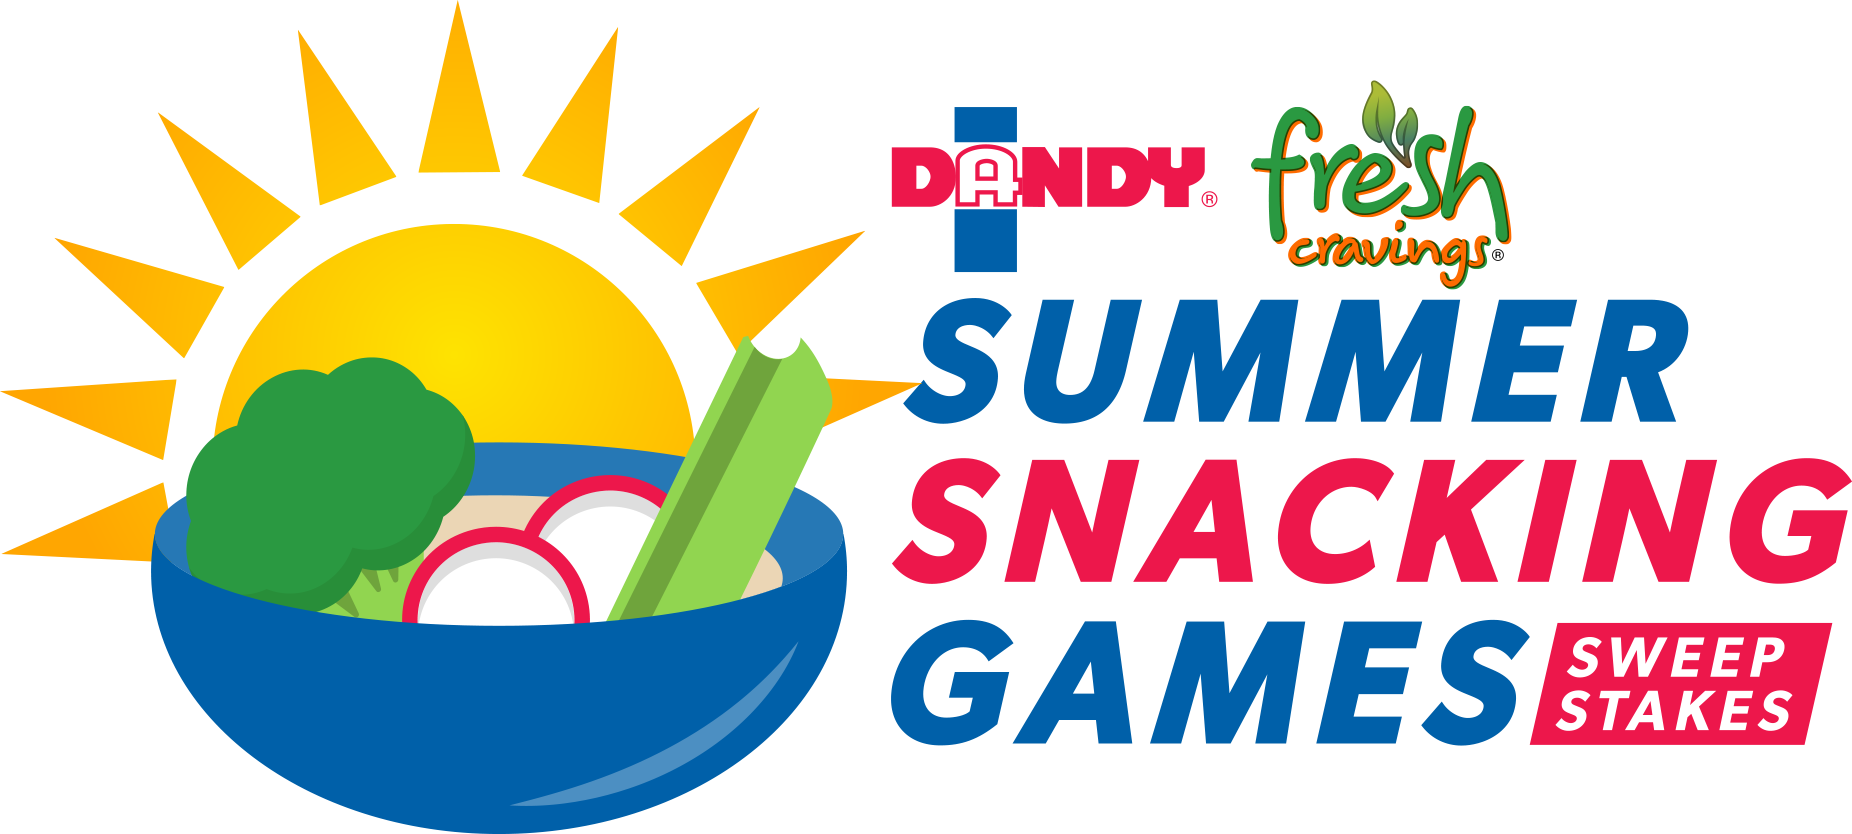 Dandy and Fresh Cravings Summer Snacking Games Sweepstakes